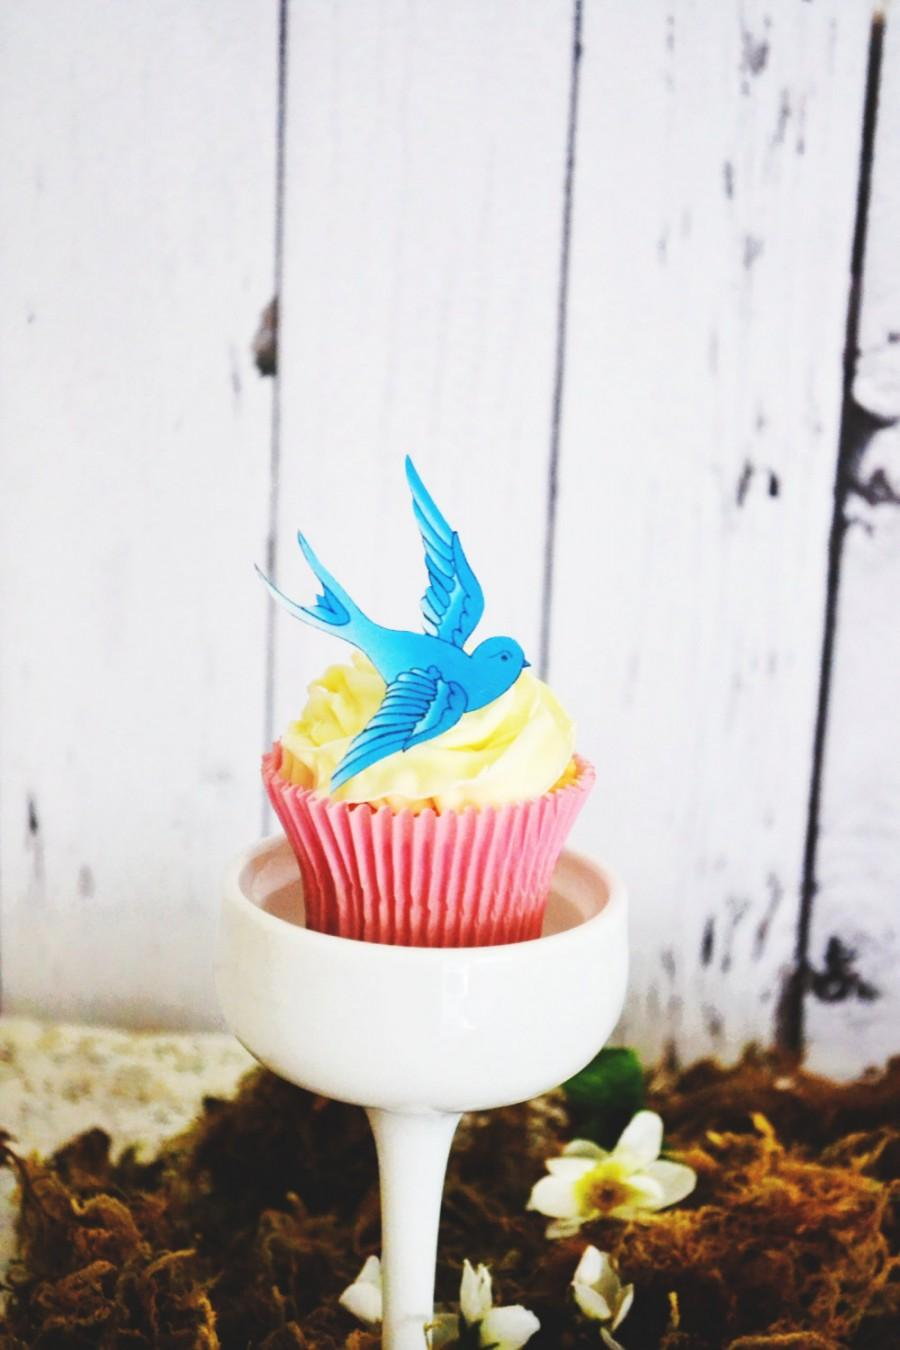 Mariage - Wedding Cake Topper The Original EDIBLE Blue Sparrows - Cake & Cupcake toppers - Food Accessories